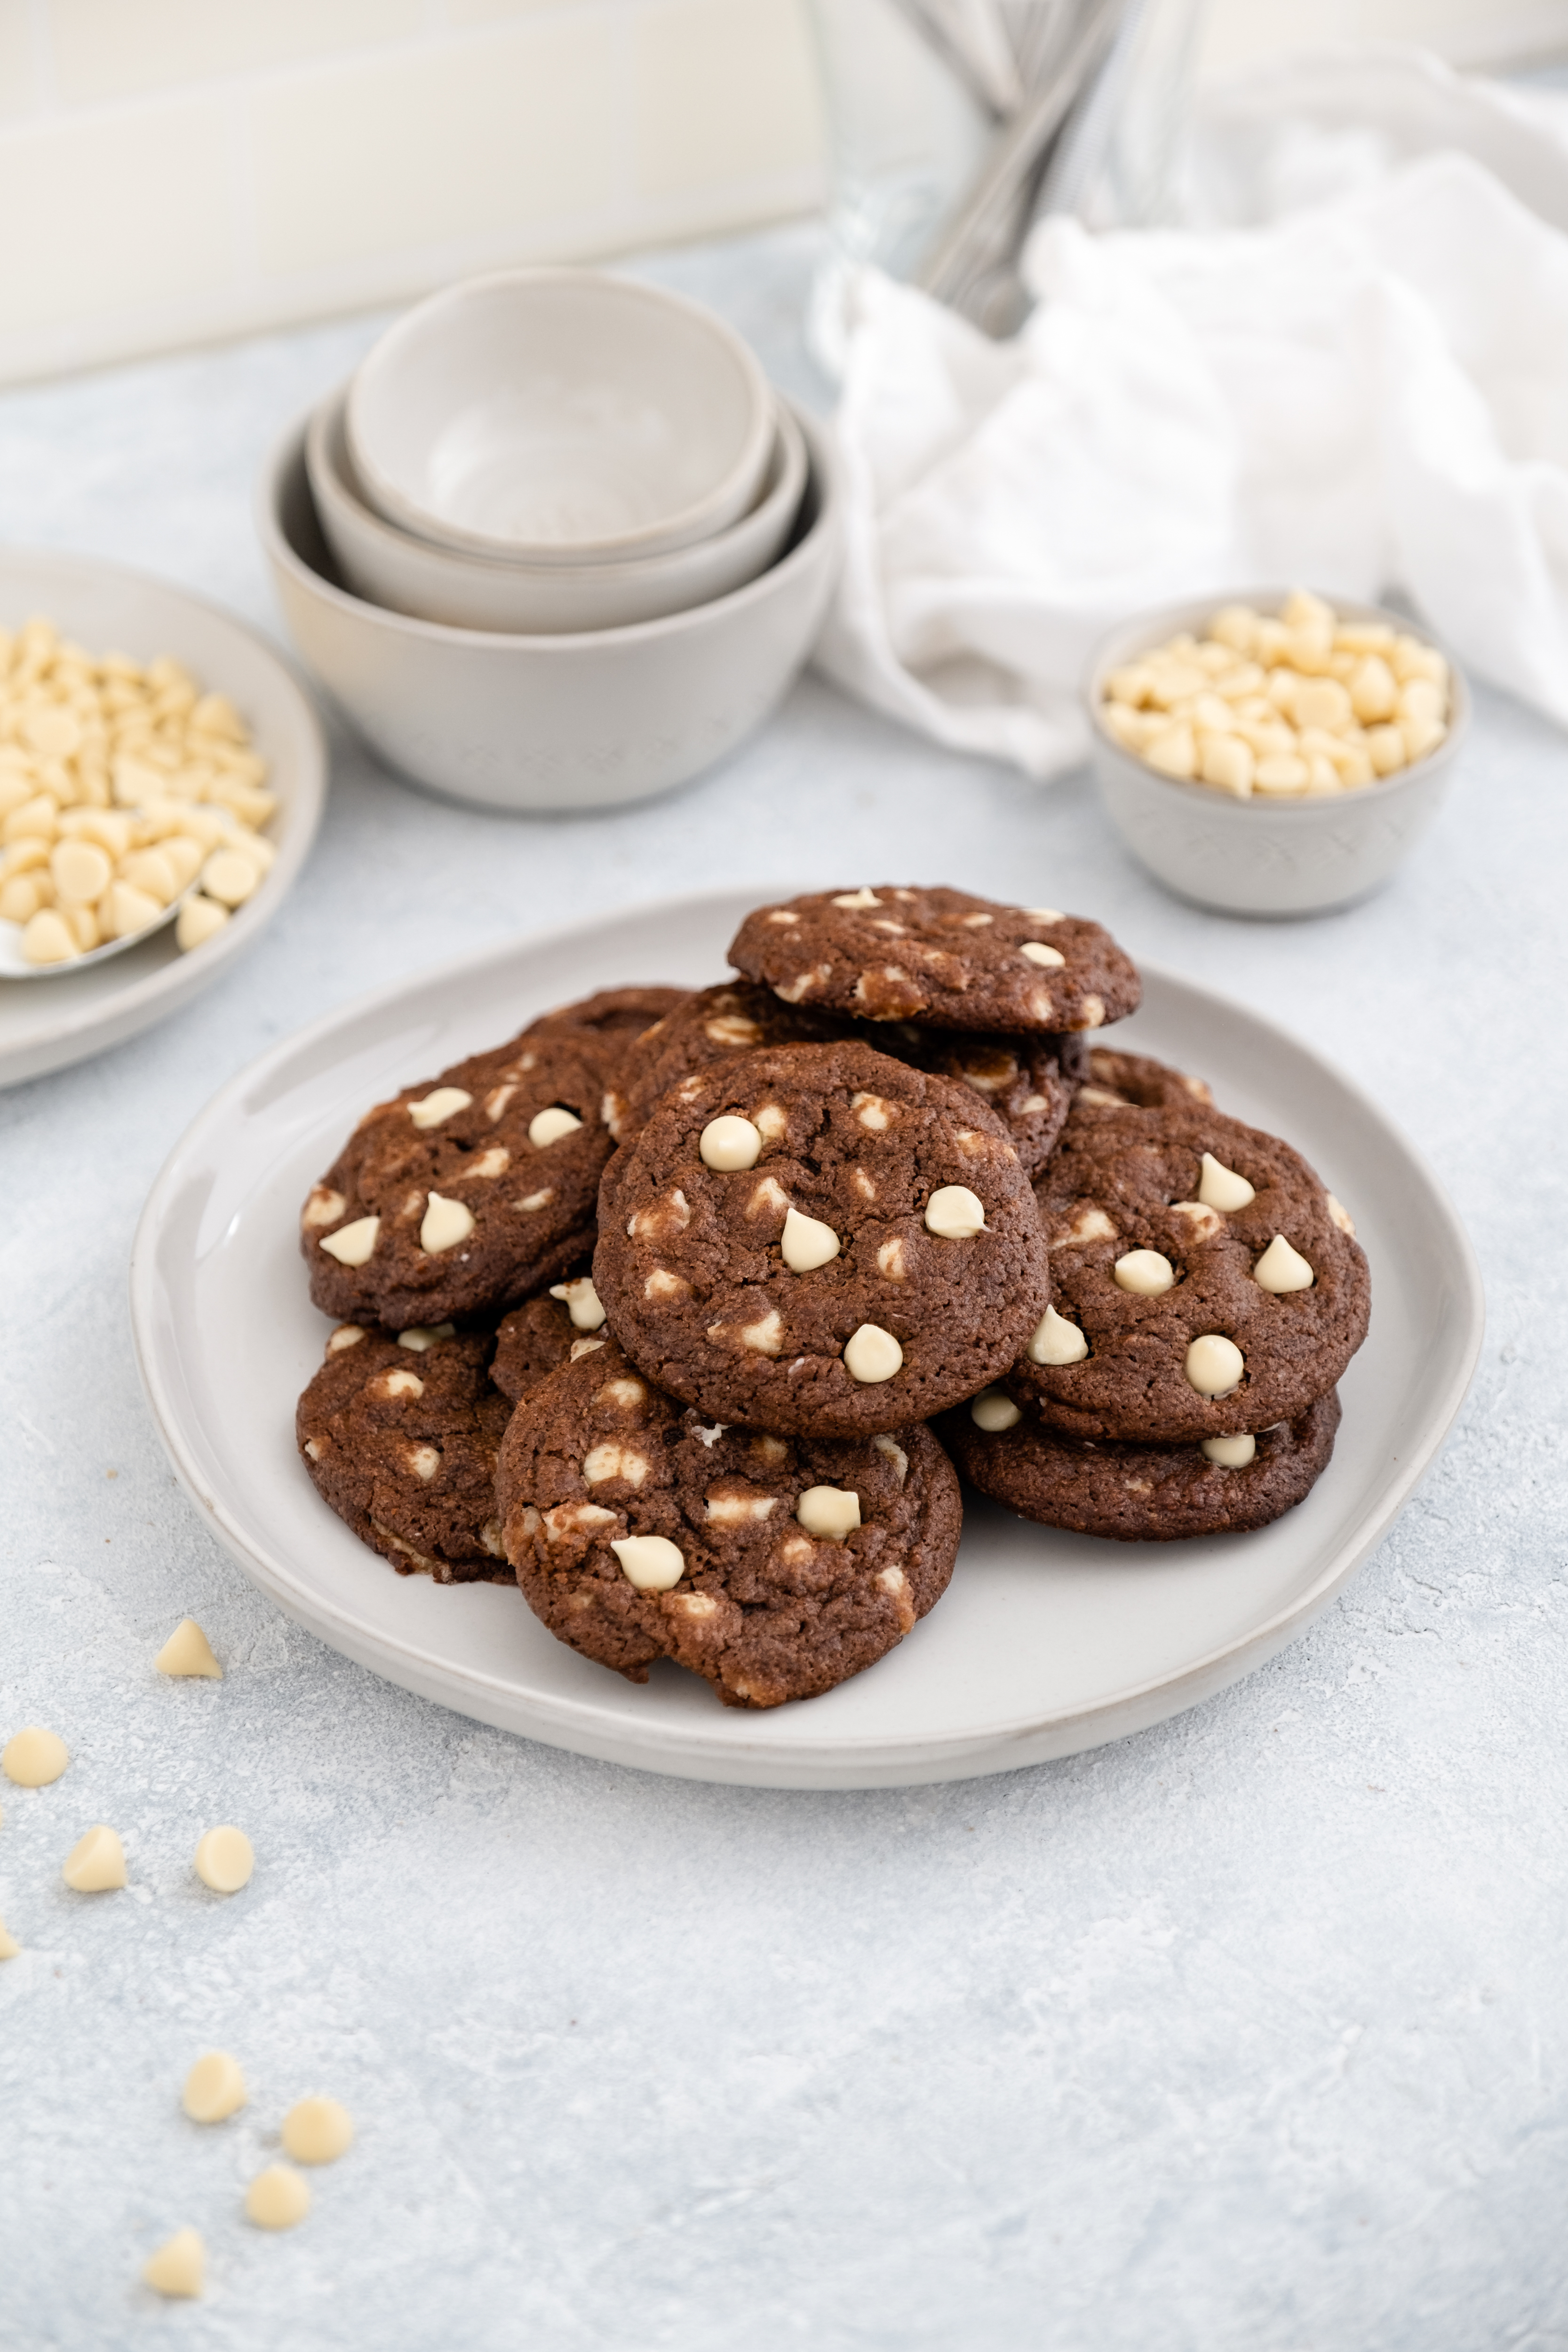 Allergen Free Chocolate Cookies with White Morsels